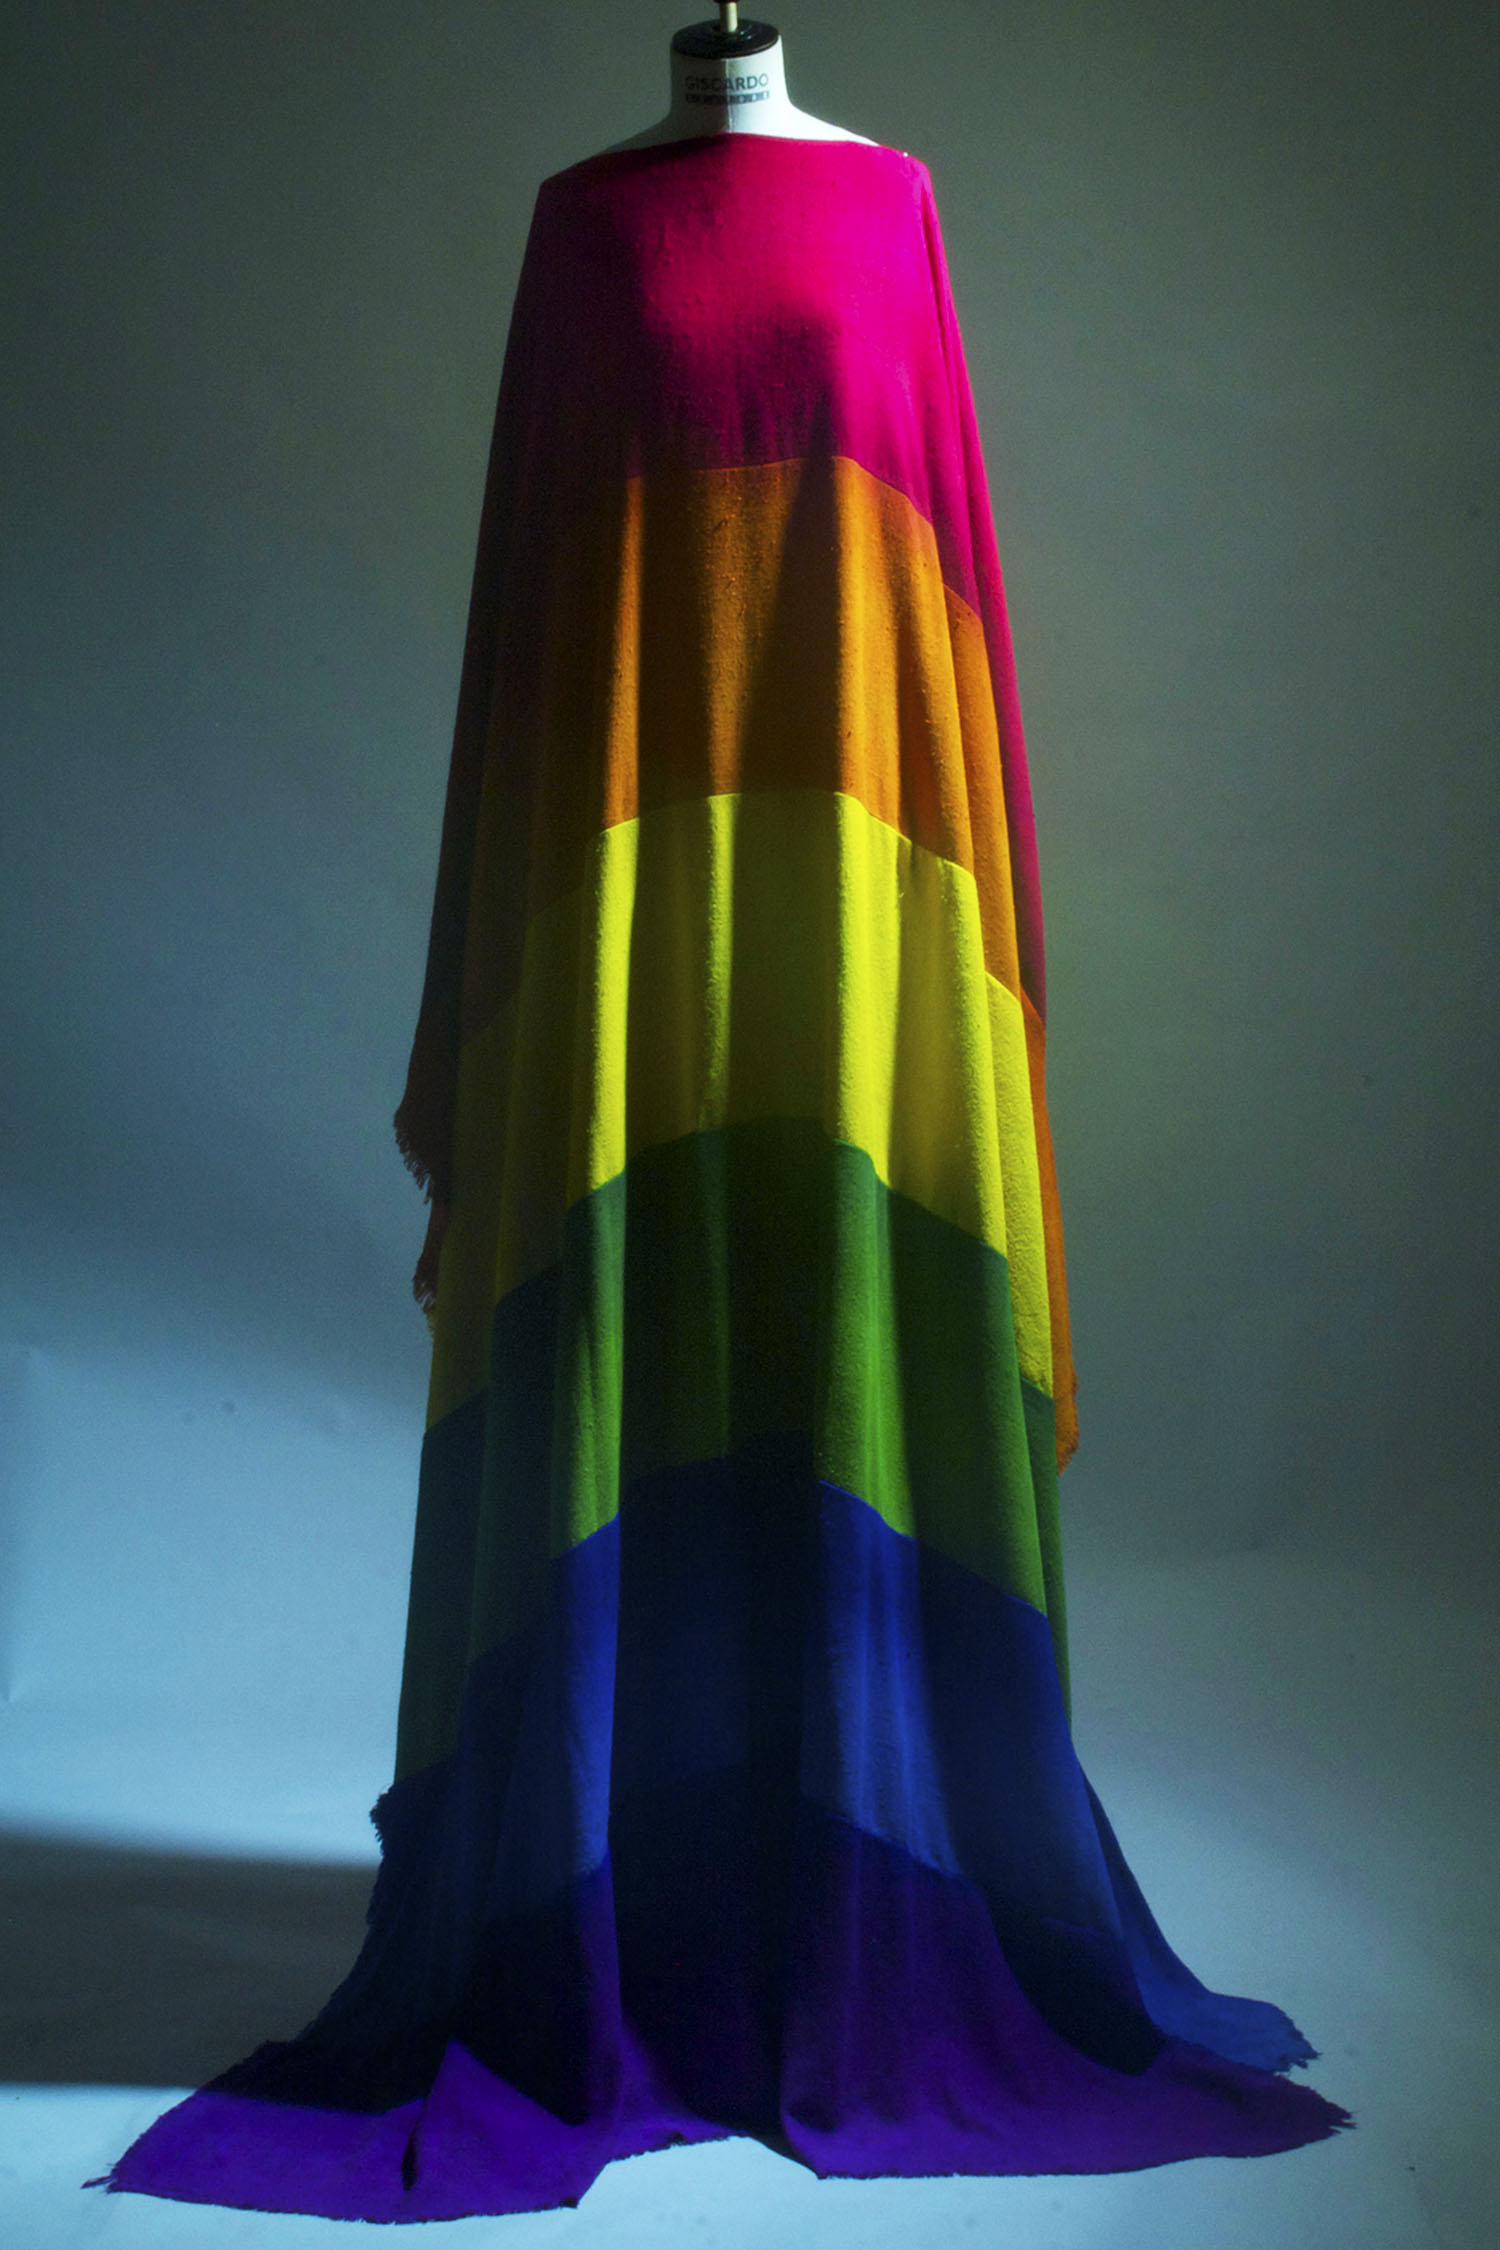 Rainbow piece collaboration with Kevin Lee Light/ Hollywood Jesus